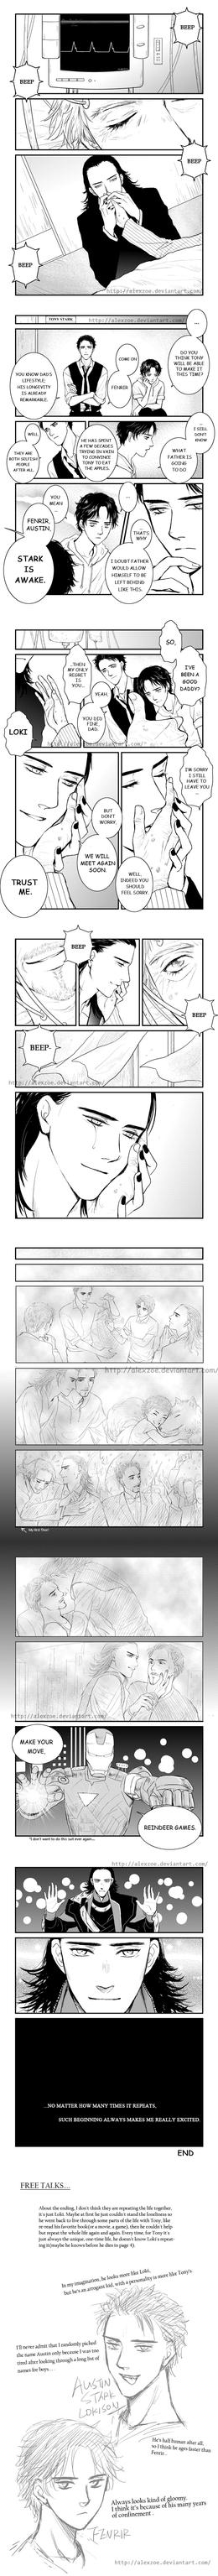 Slash-FrostIron fan comic - ENDLESS LOOP by alexzoe